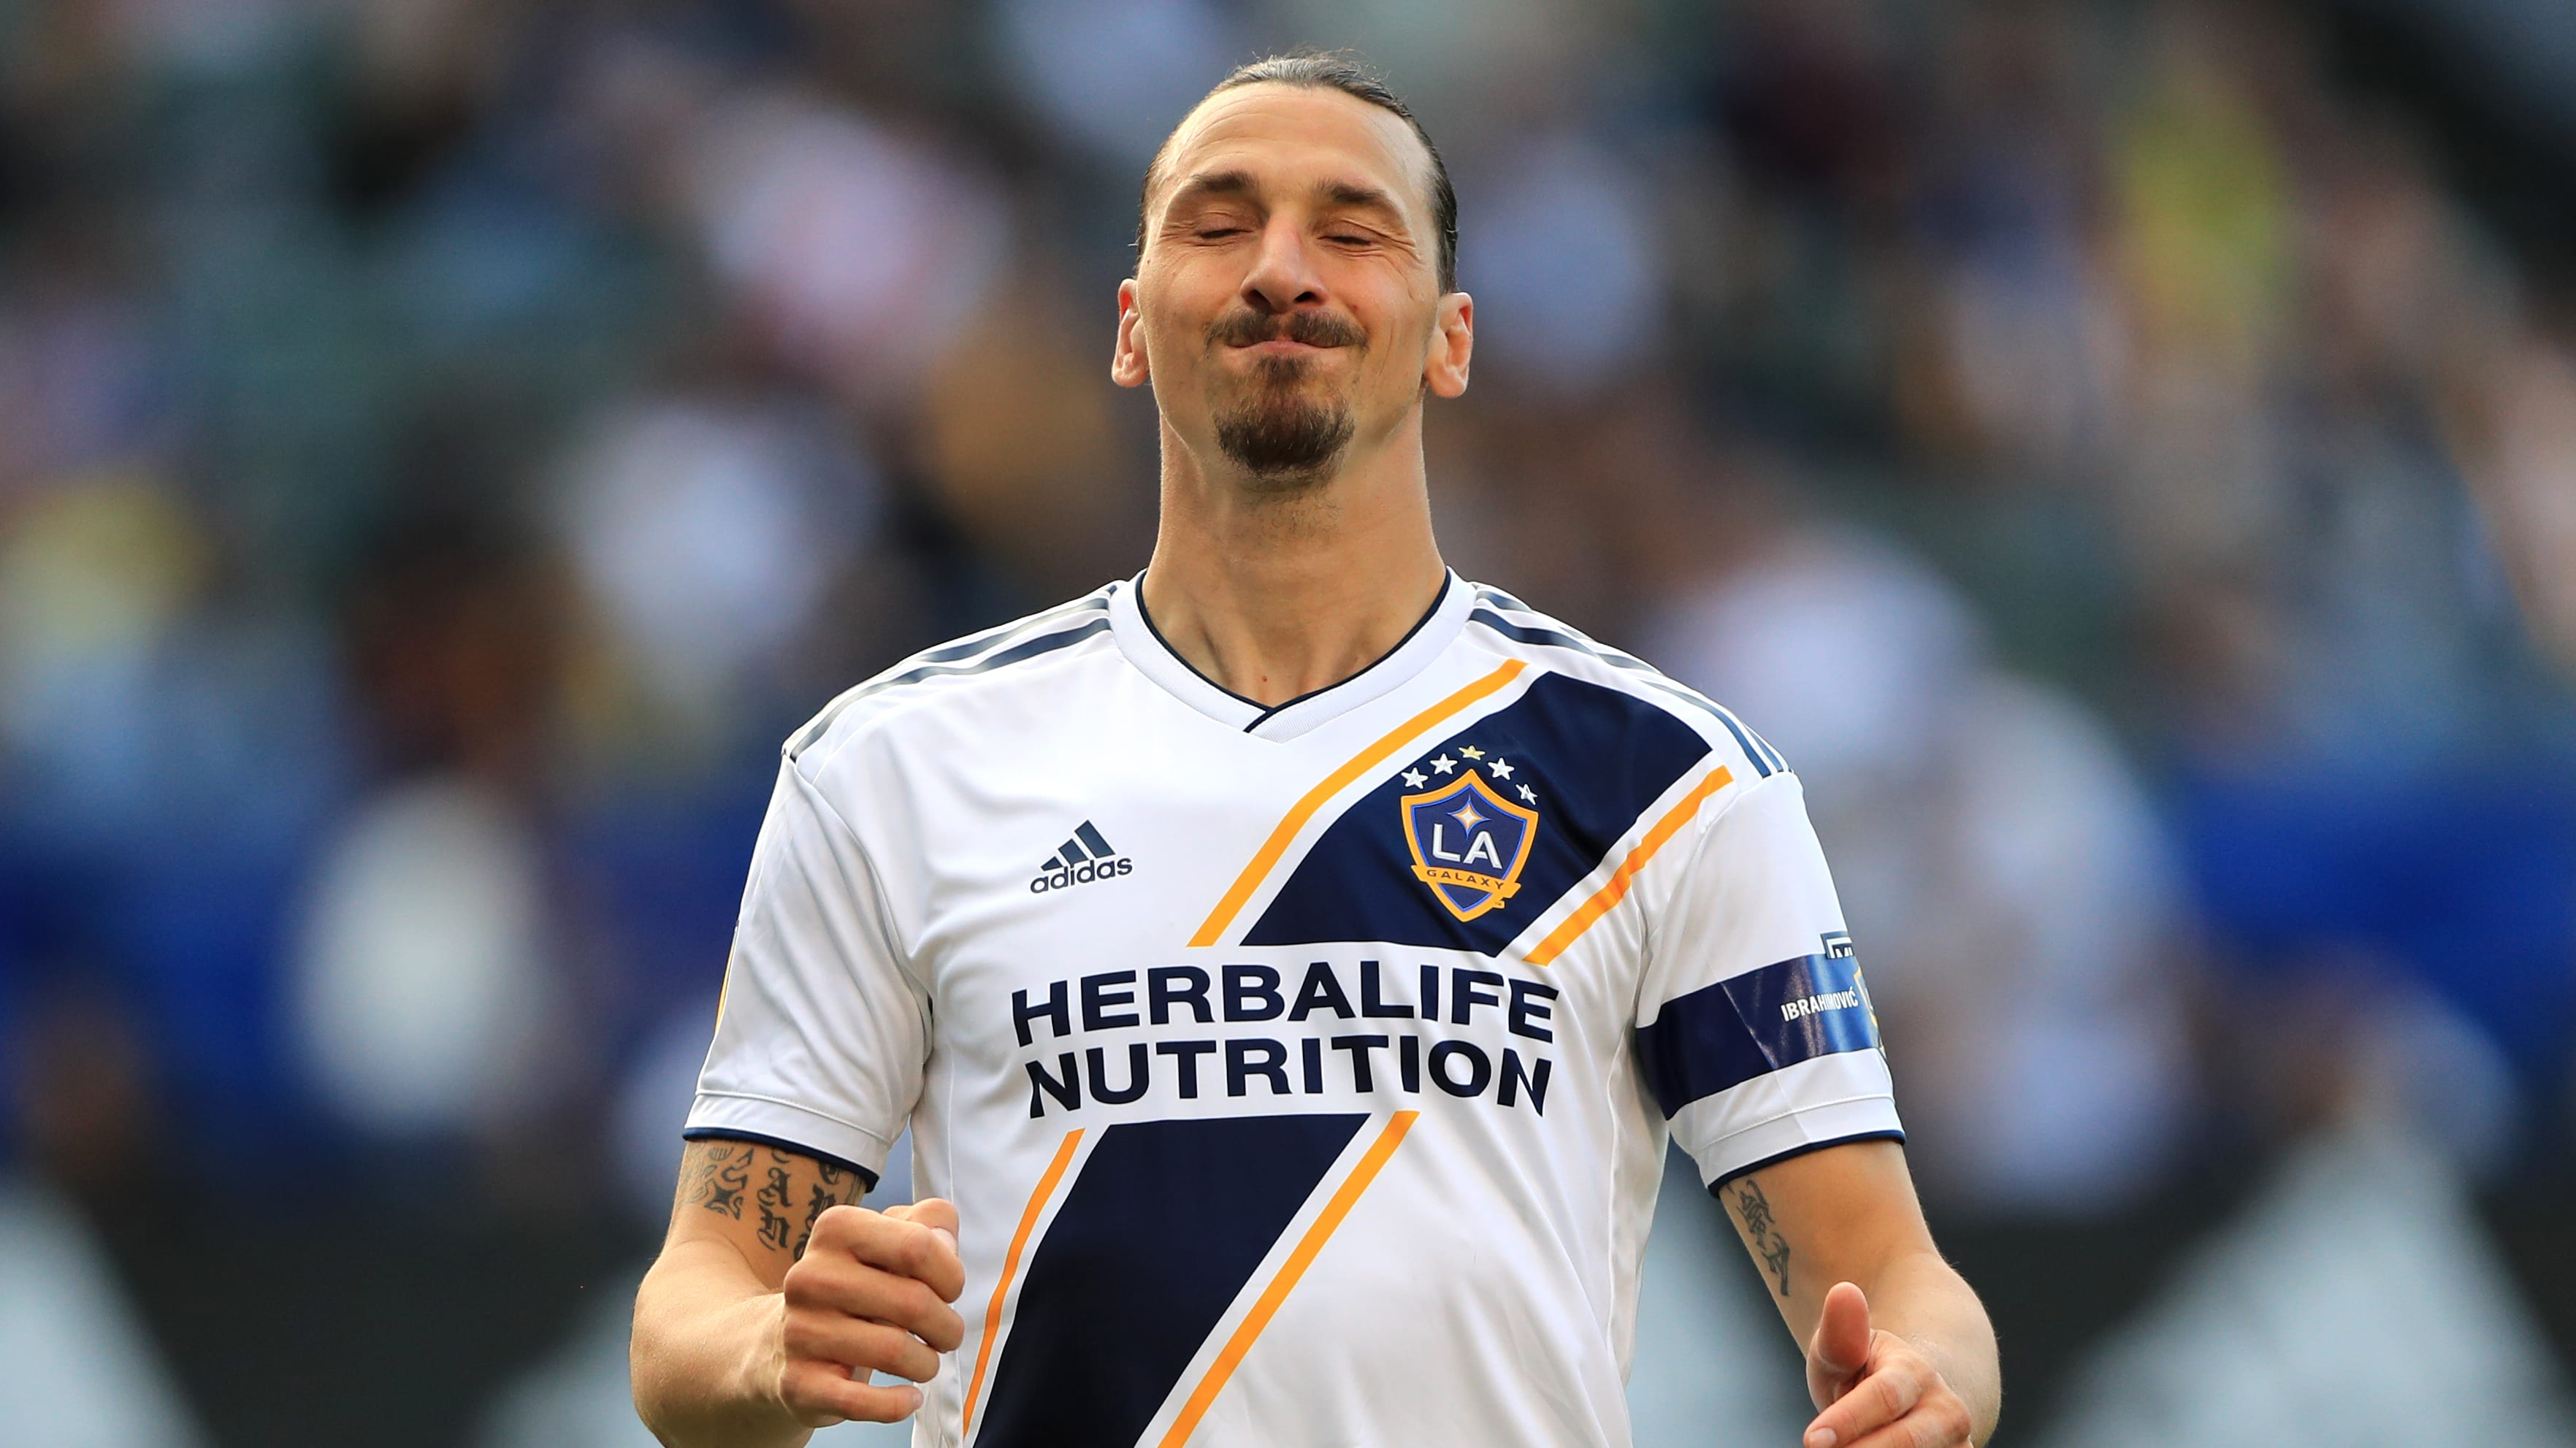 CARSON, CALIFORNIA - APRIL 28:  Zlatan Ibrahimovic #9 of Los Angeles Galaxy looks during the first half of a game against the Real Salt Lake at Dignity Health Sports Park on April 28, 2019 in Carson, California. Los Angeles Galaxy defeated Real Salt Lake 2-1.  (Photo by Sean M. Haffey/Getty Images)